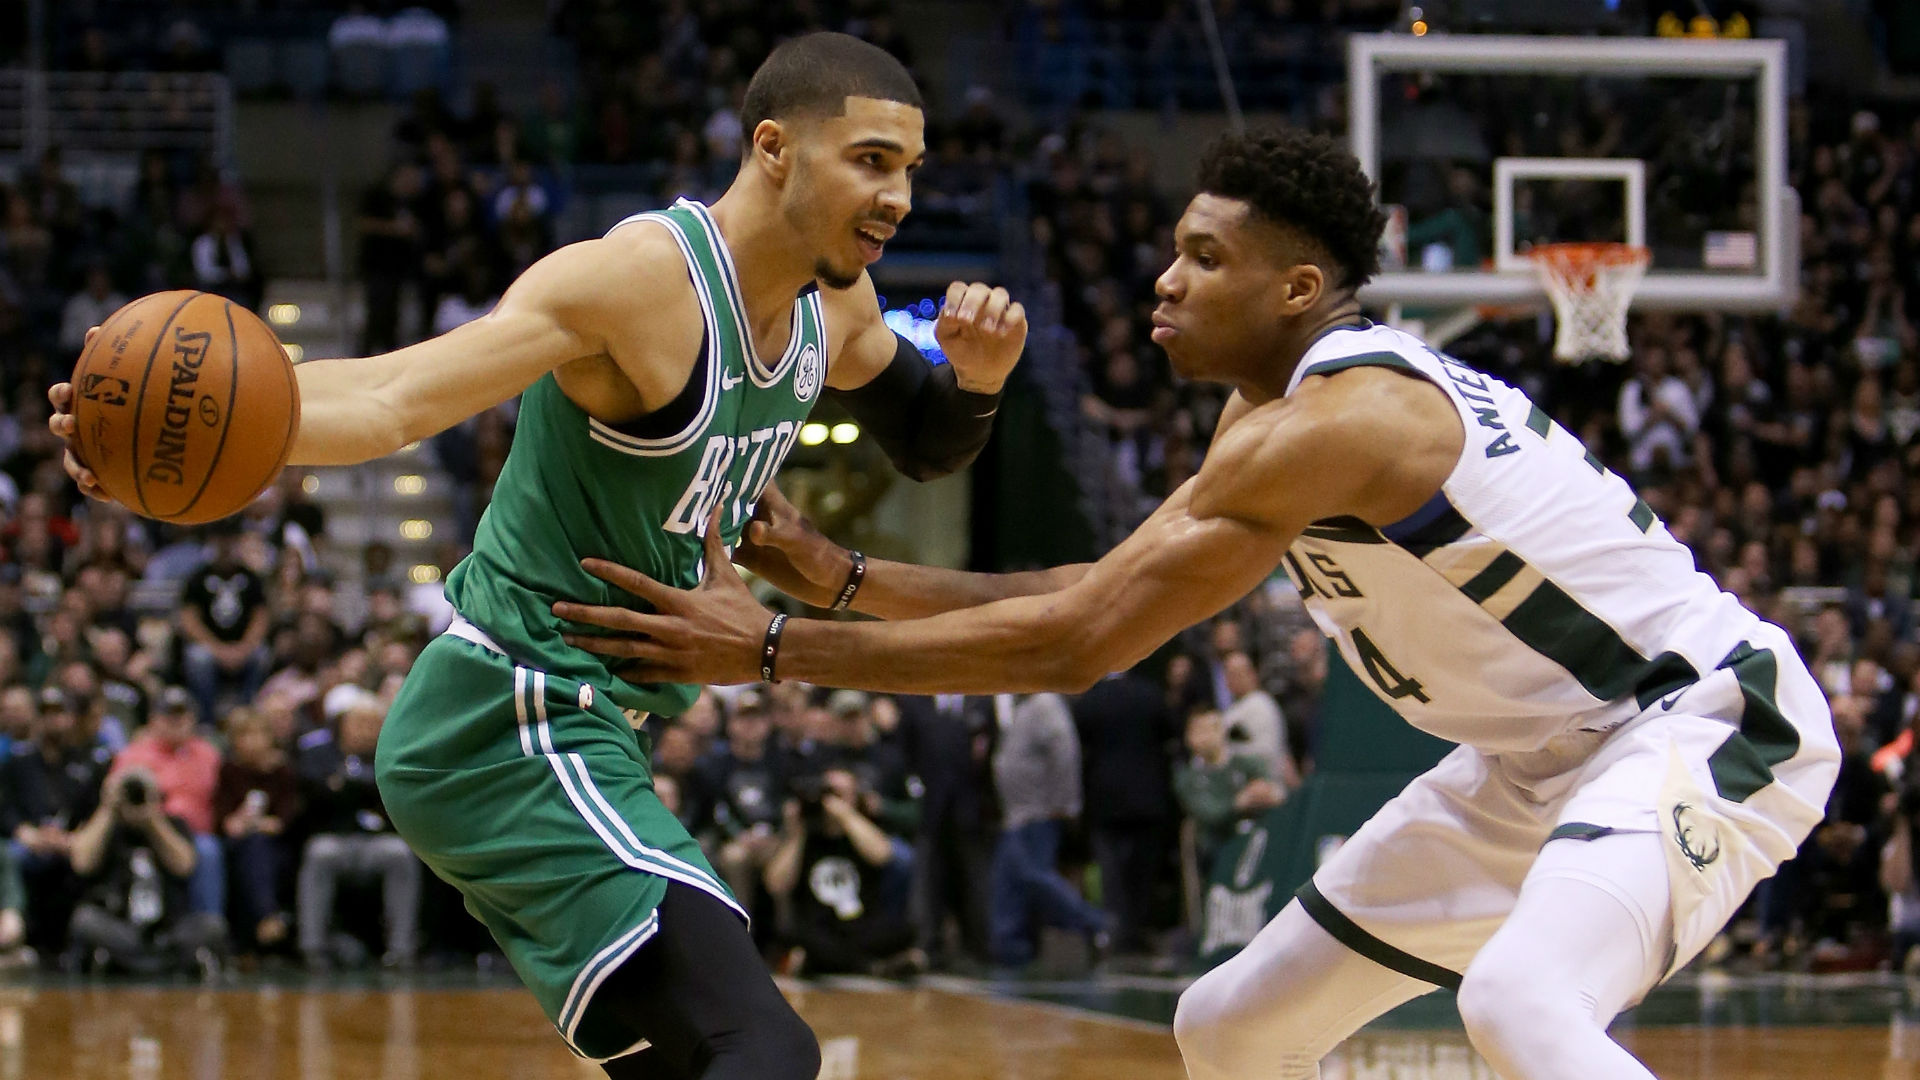 jayson-tatum-giannis-antetokounmpo-getty